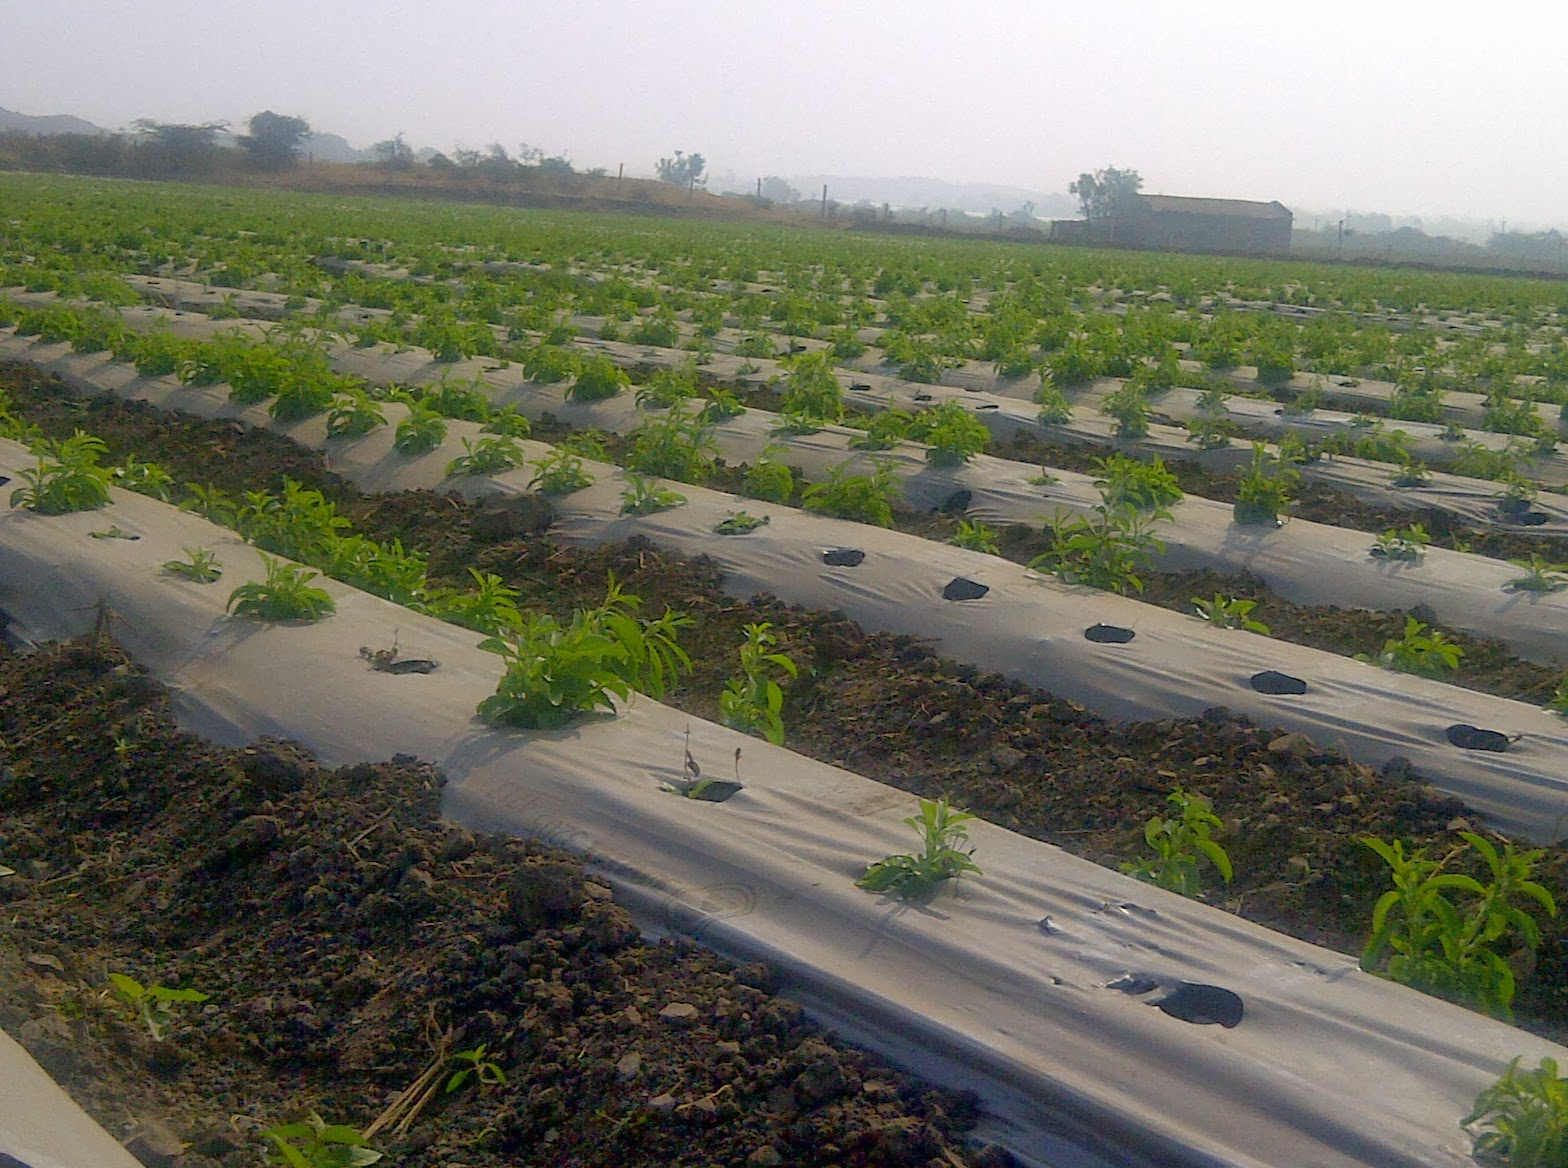 STEVIA CULTIVATION IN GUJRAT